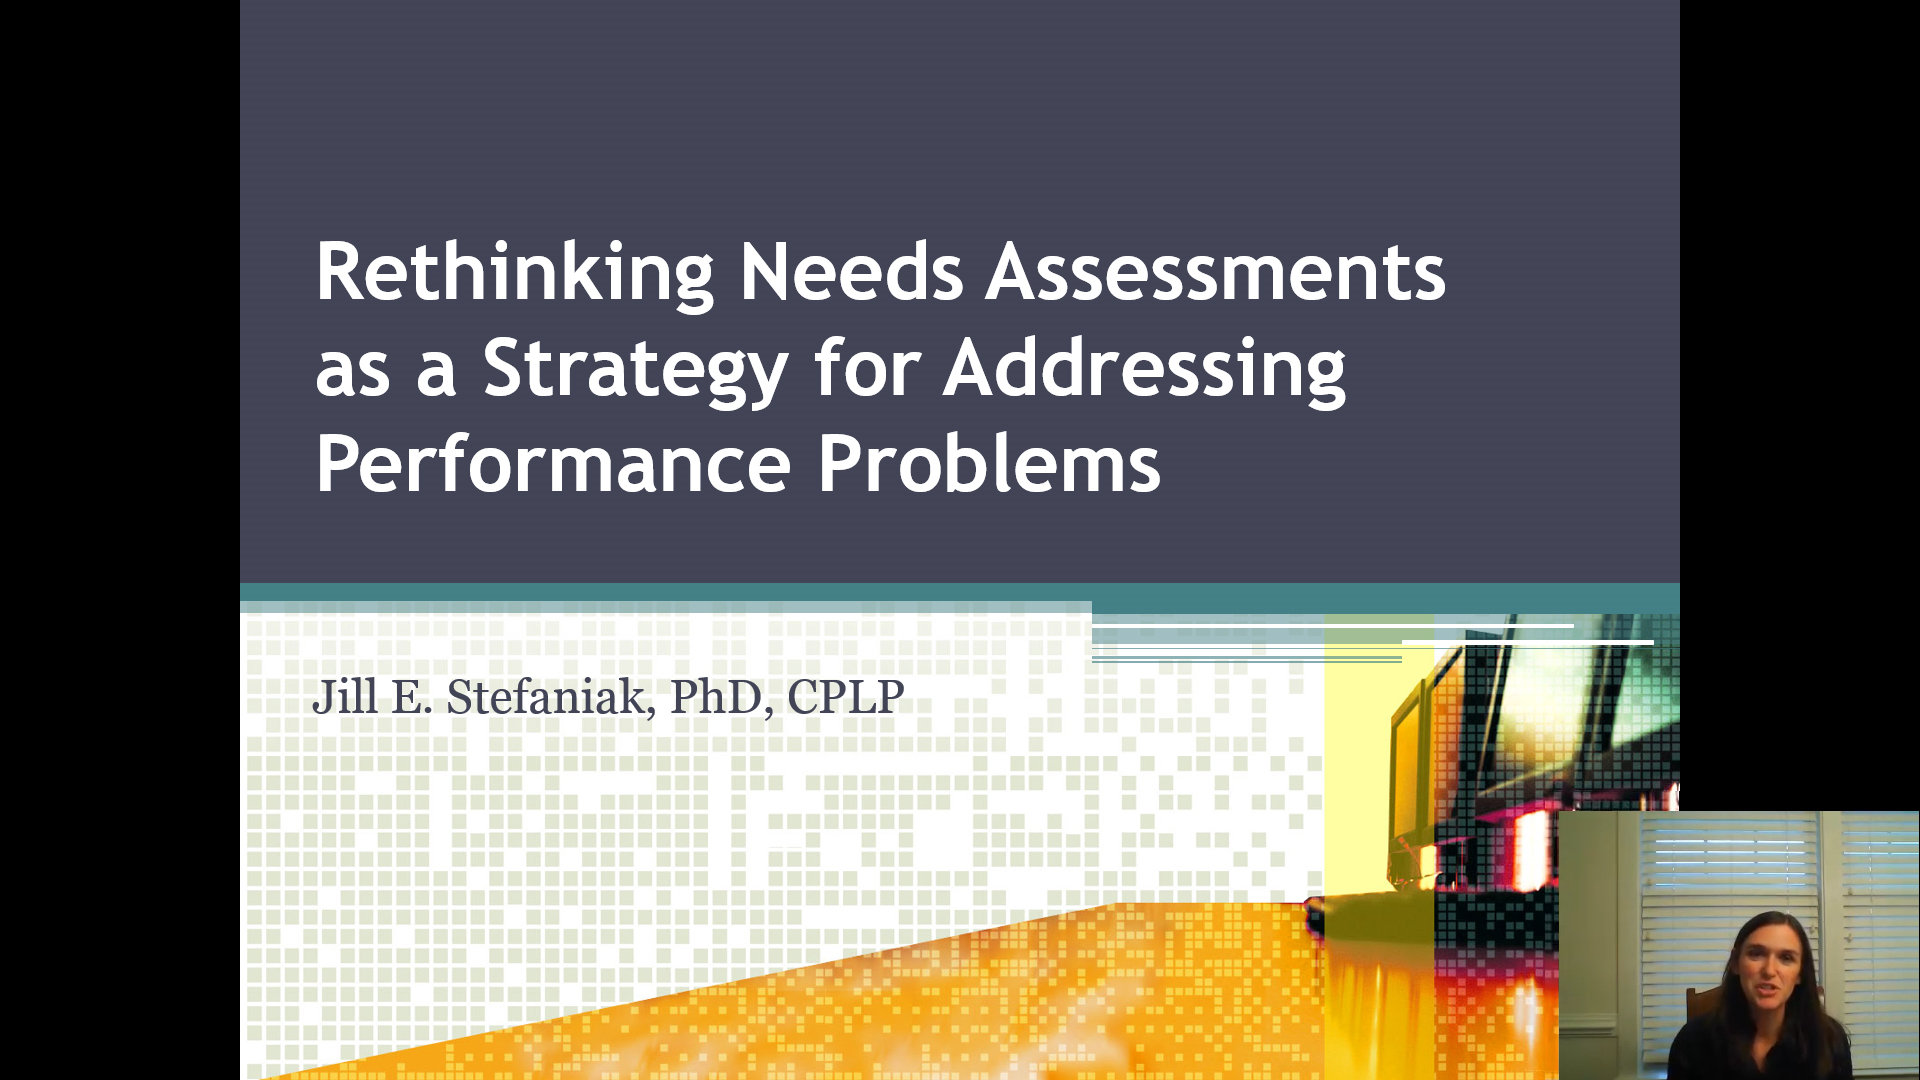 Rethinking Needs Assessments as a Strategy for Addressing Performance Problems